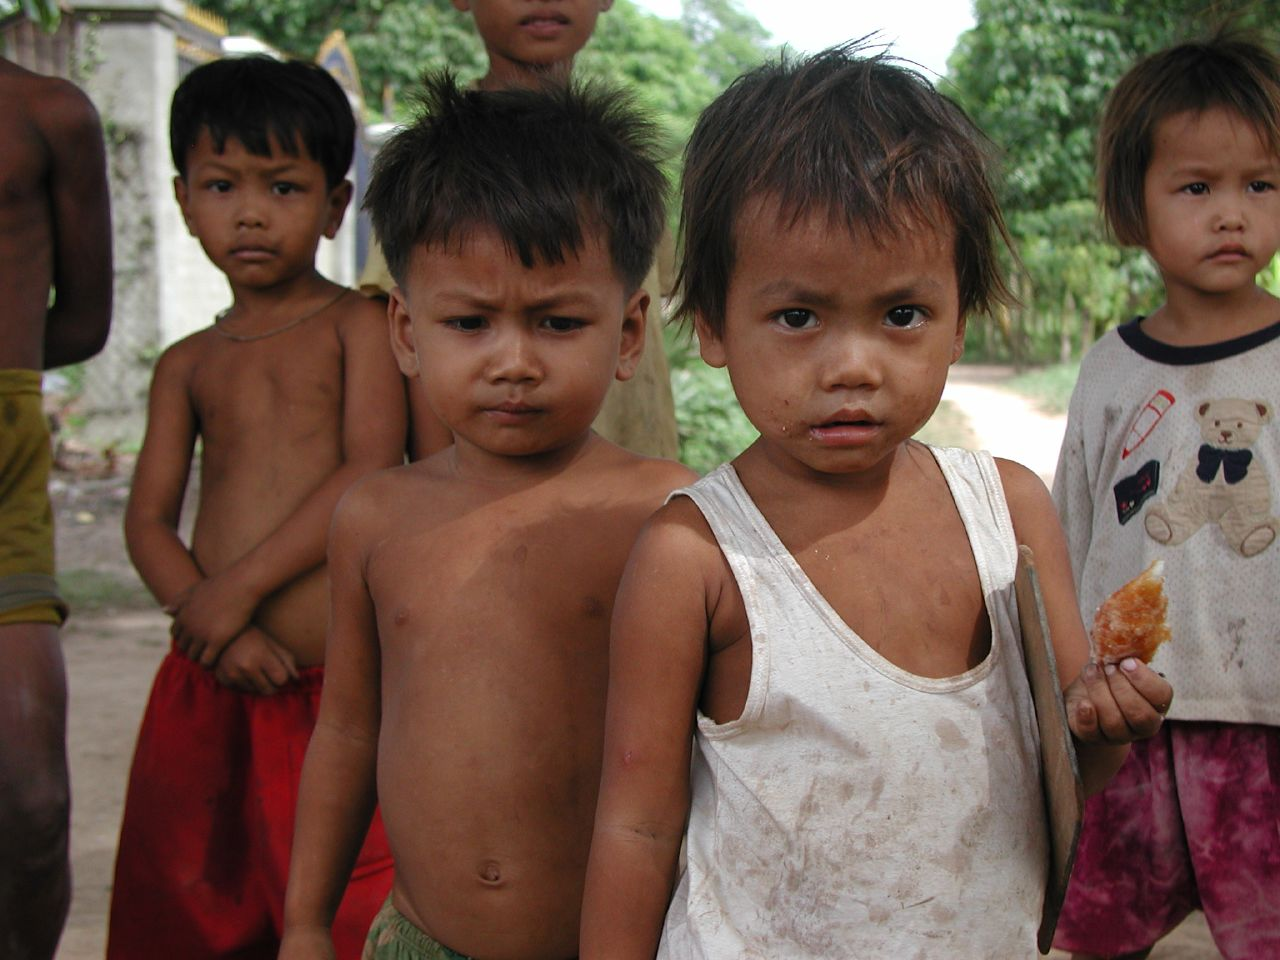 Plights of Khmer Children